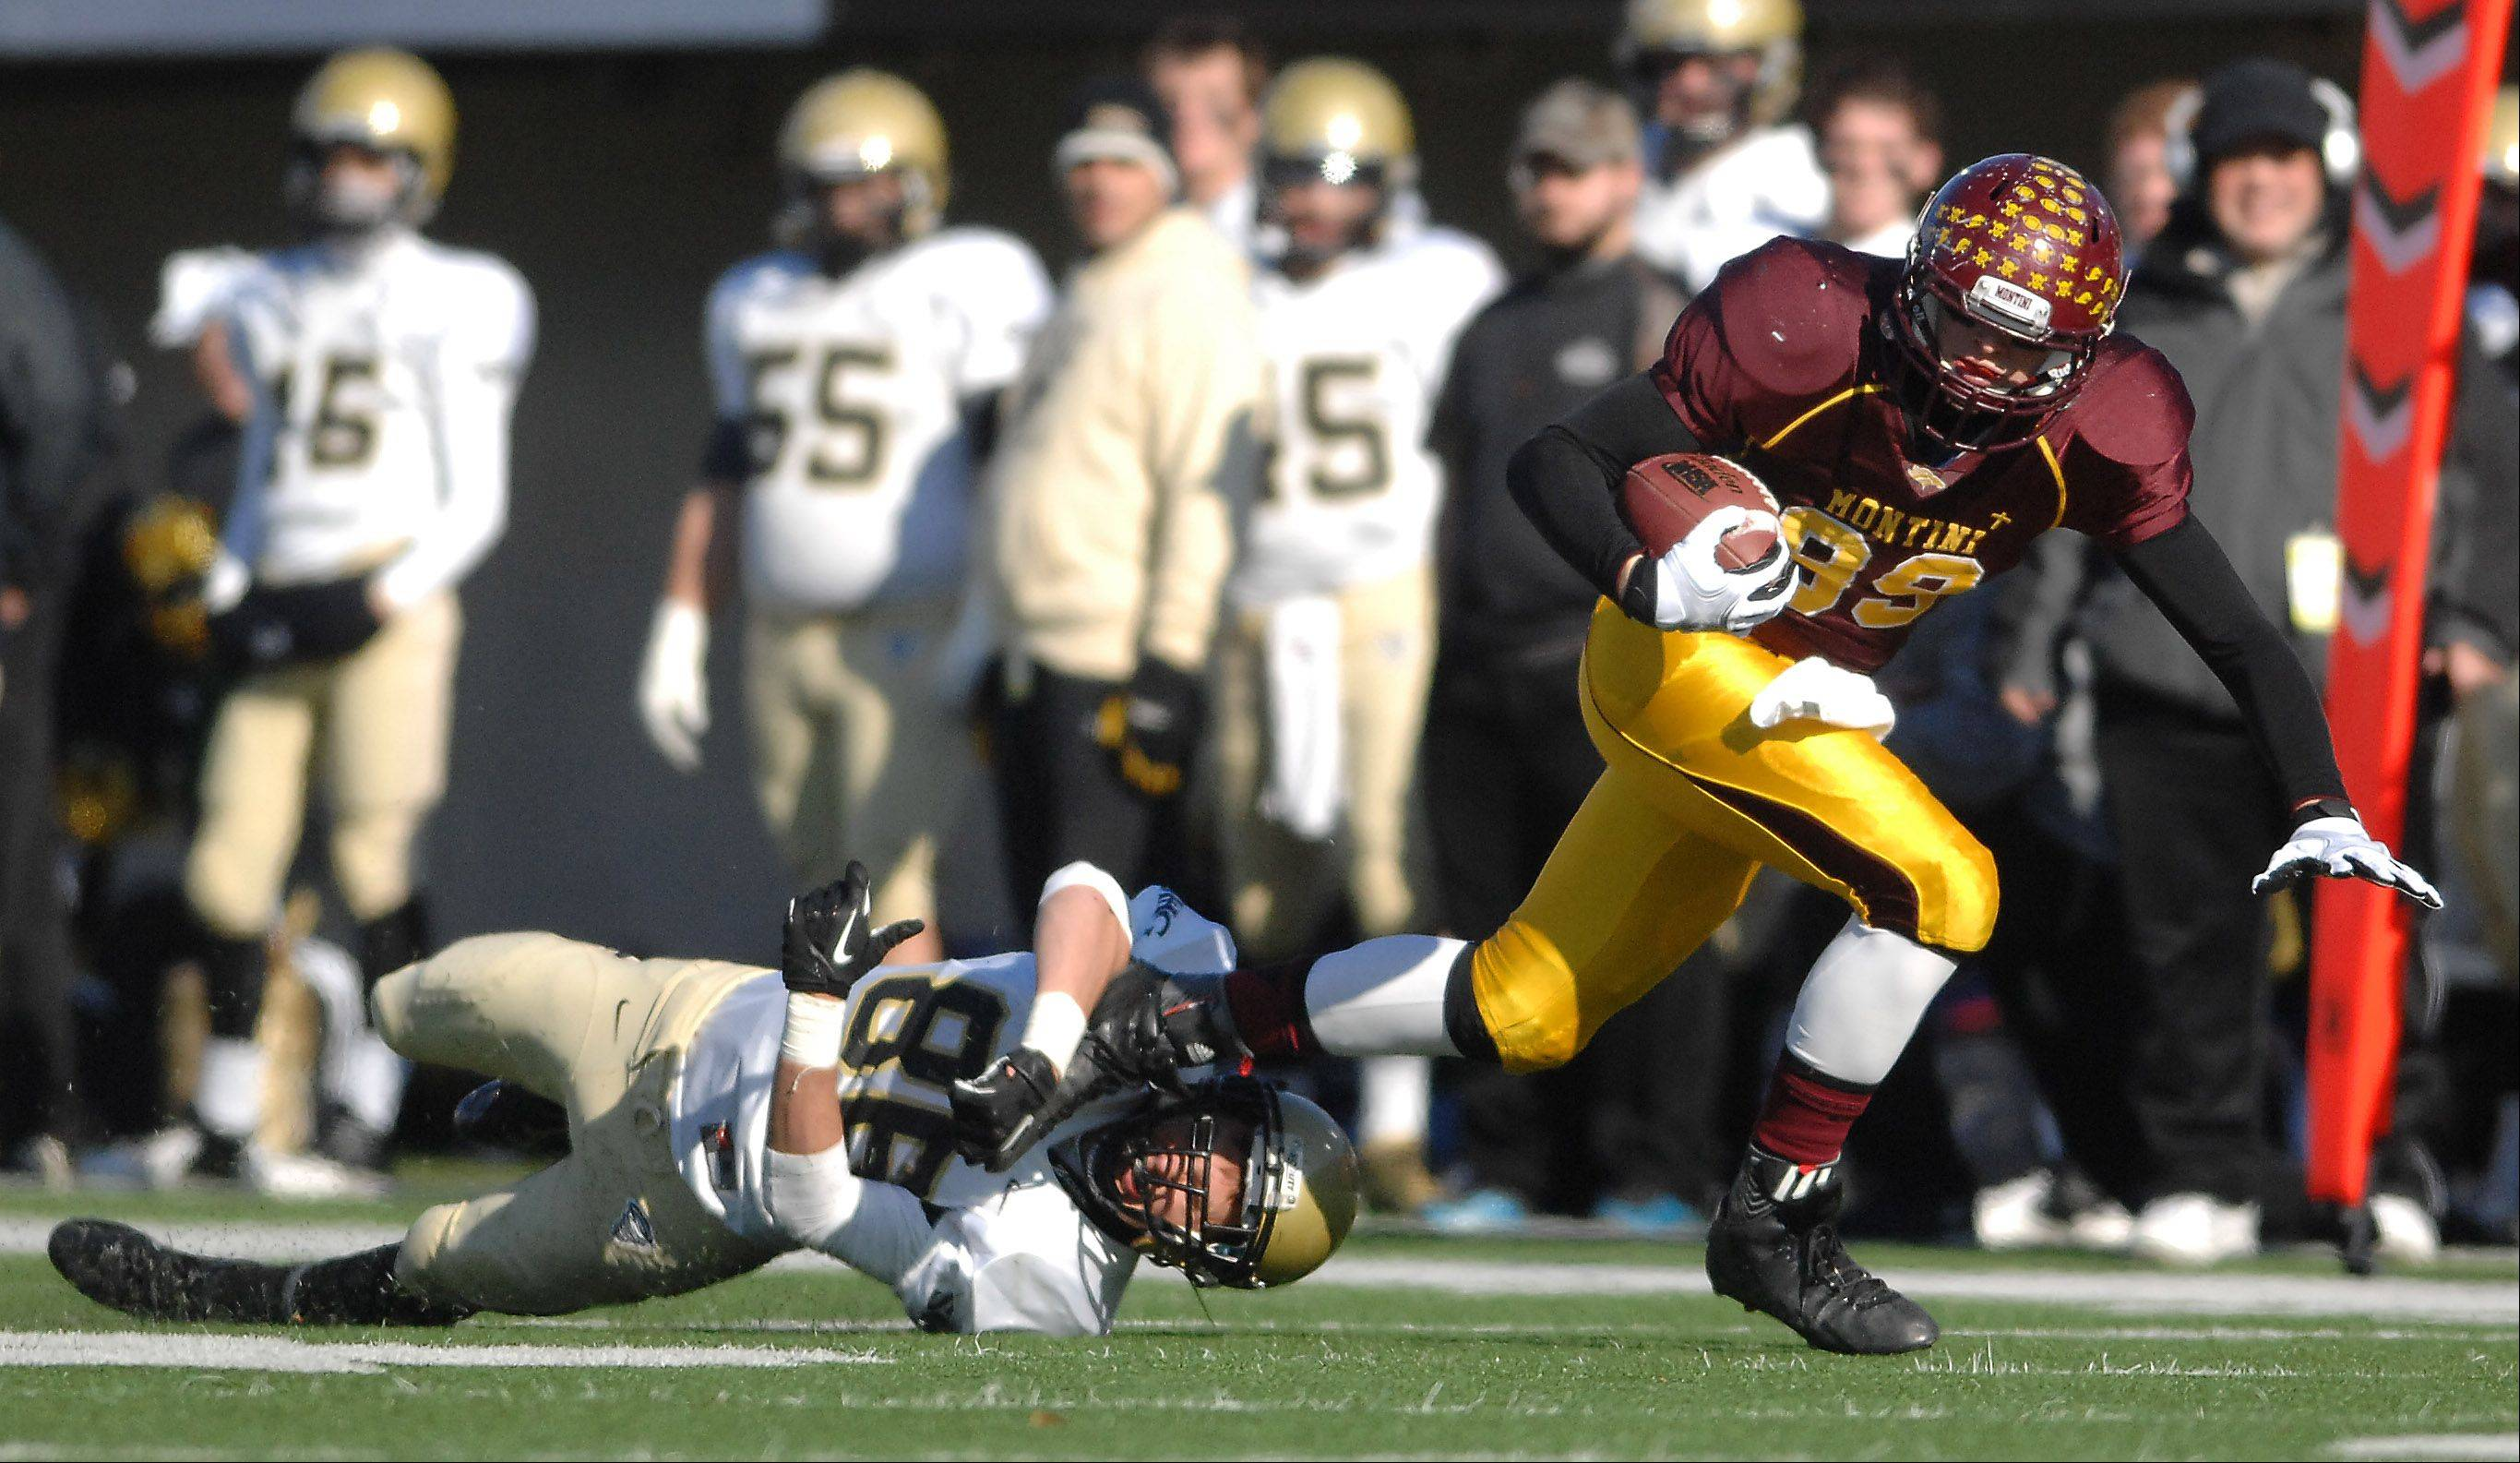 Montini's Matthew Brachmann (89) slips out of a tackle attempt during Saturday's 5A championship game in DeKalb.